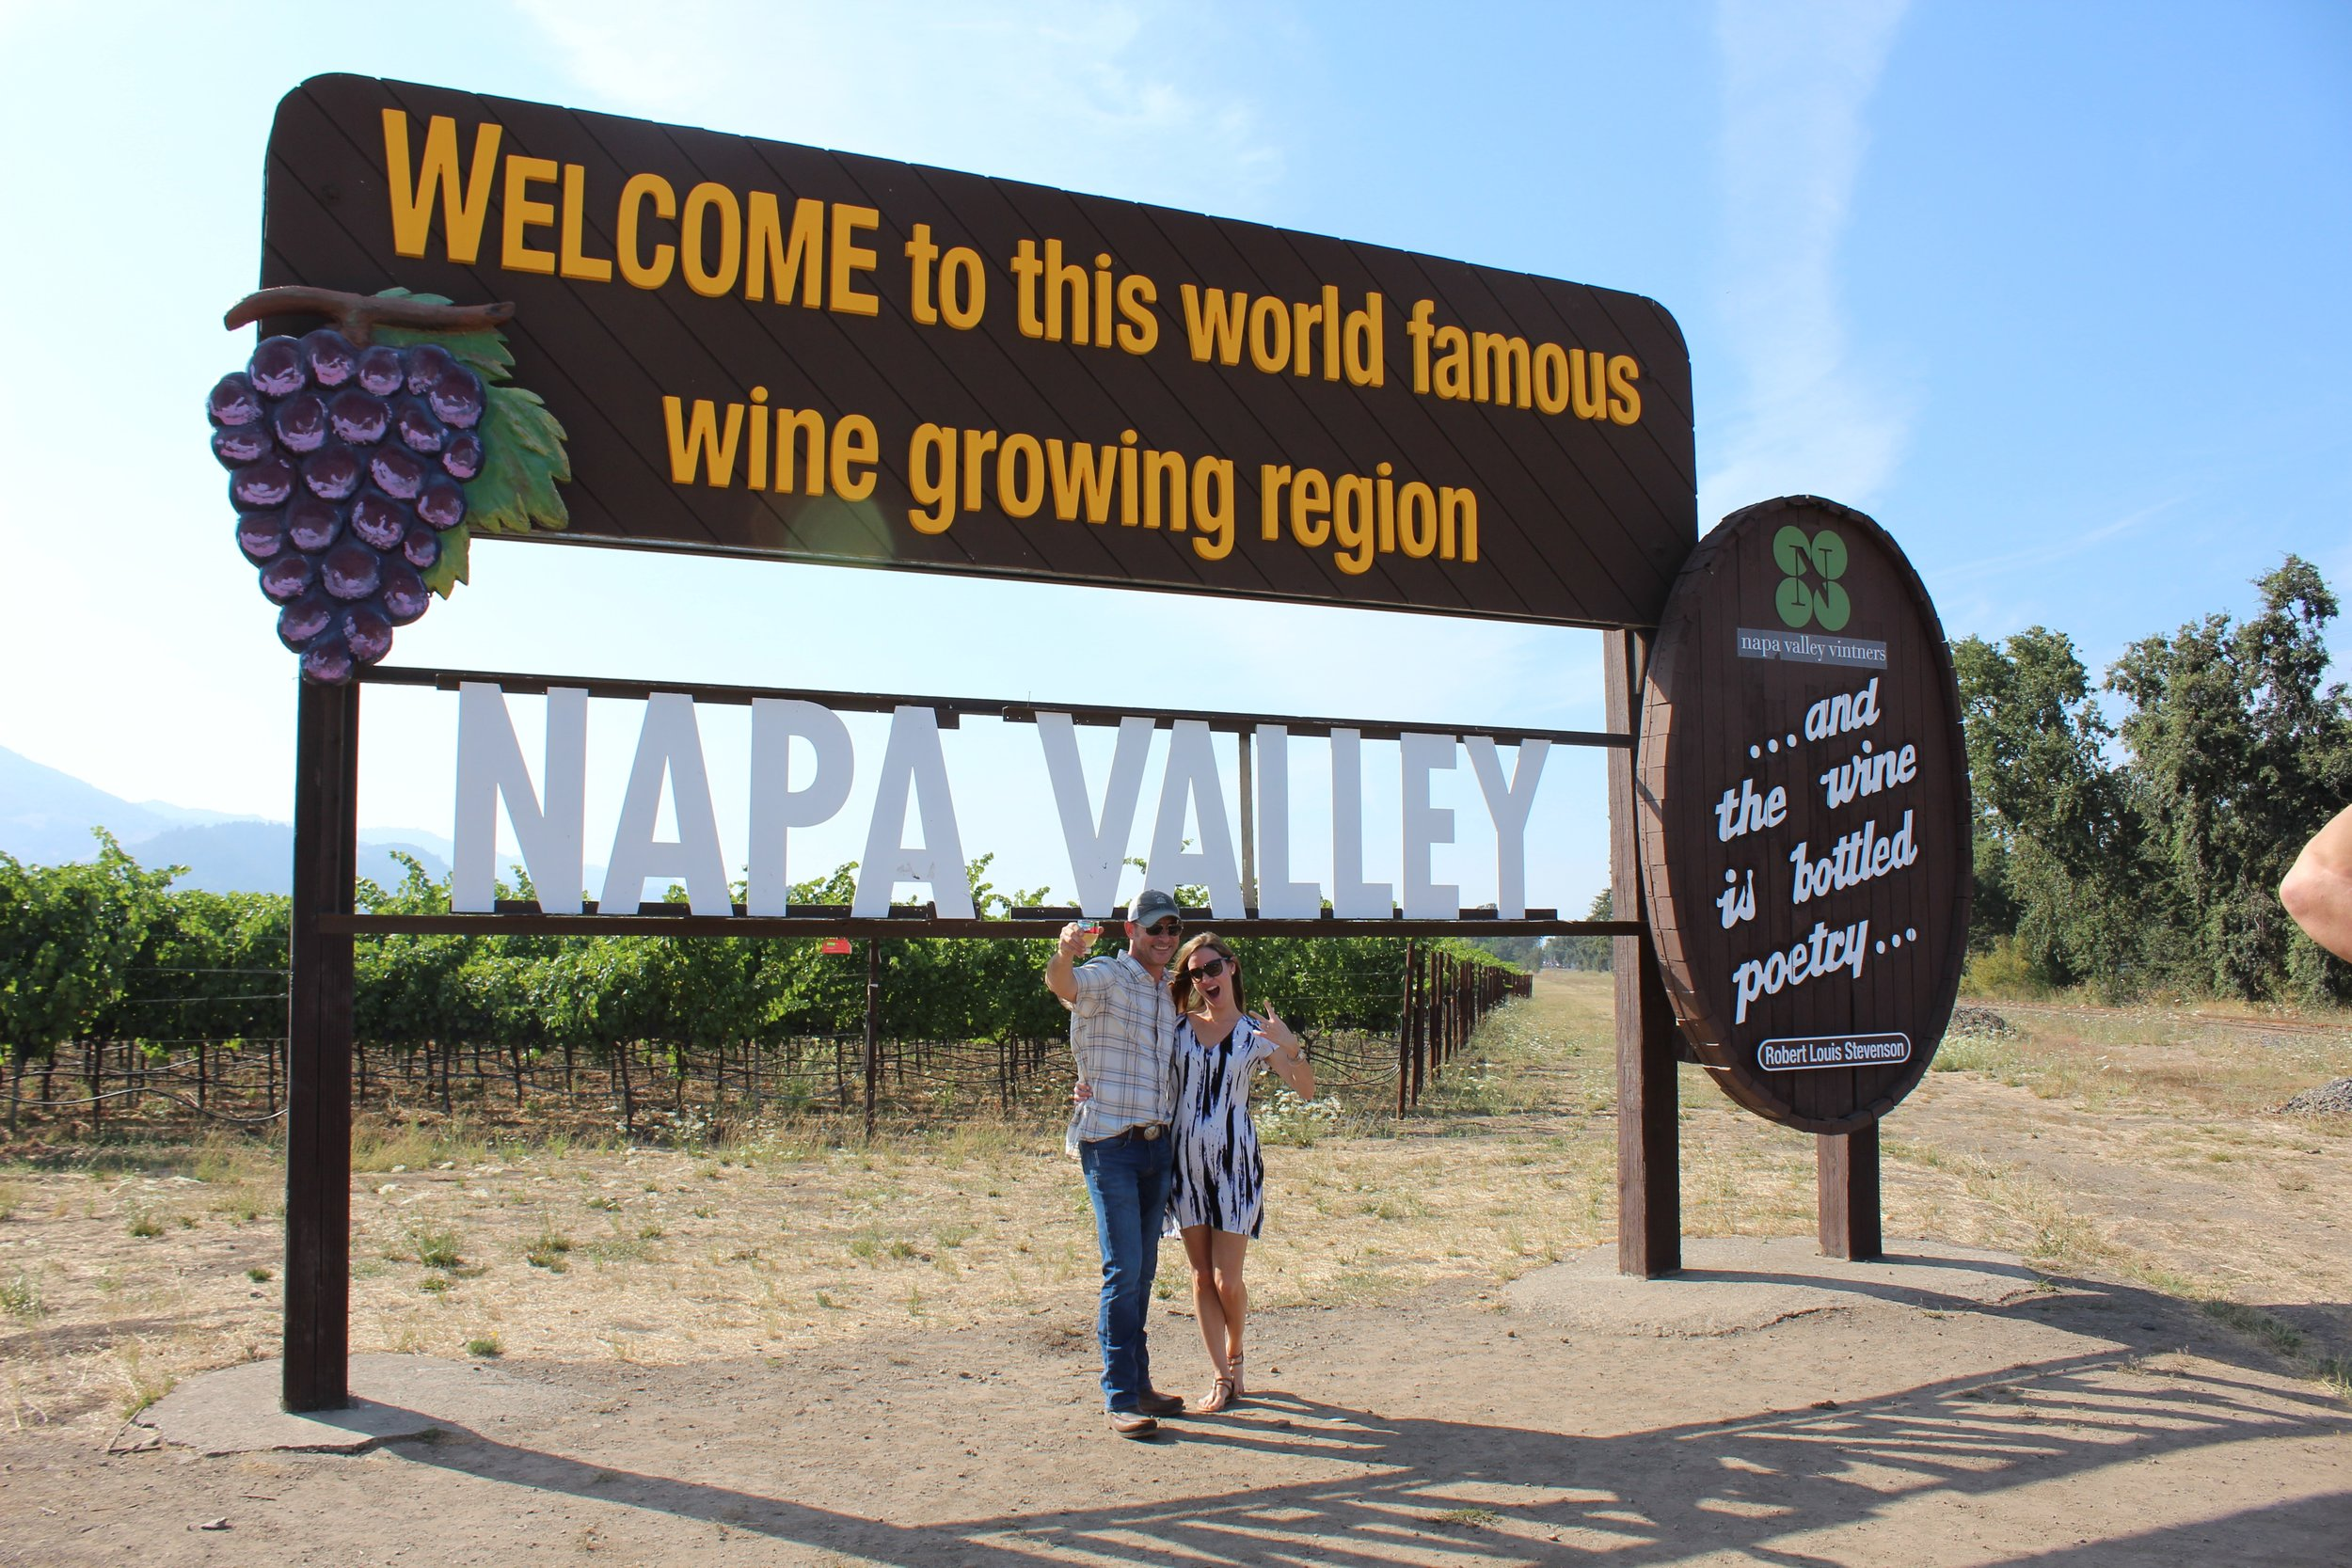 verve_welcome-to-napa.jpg